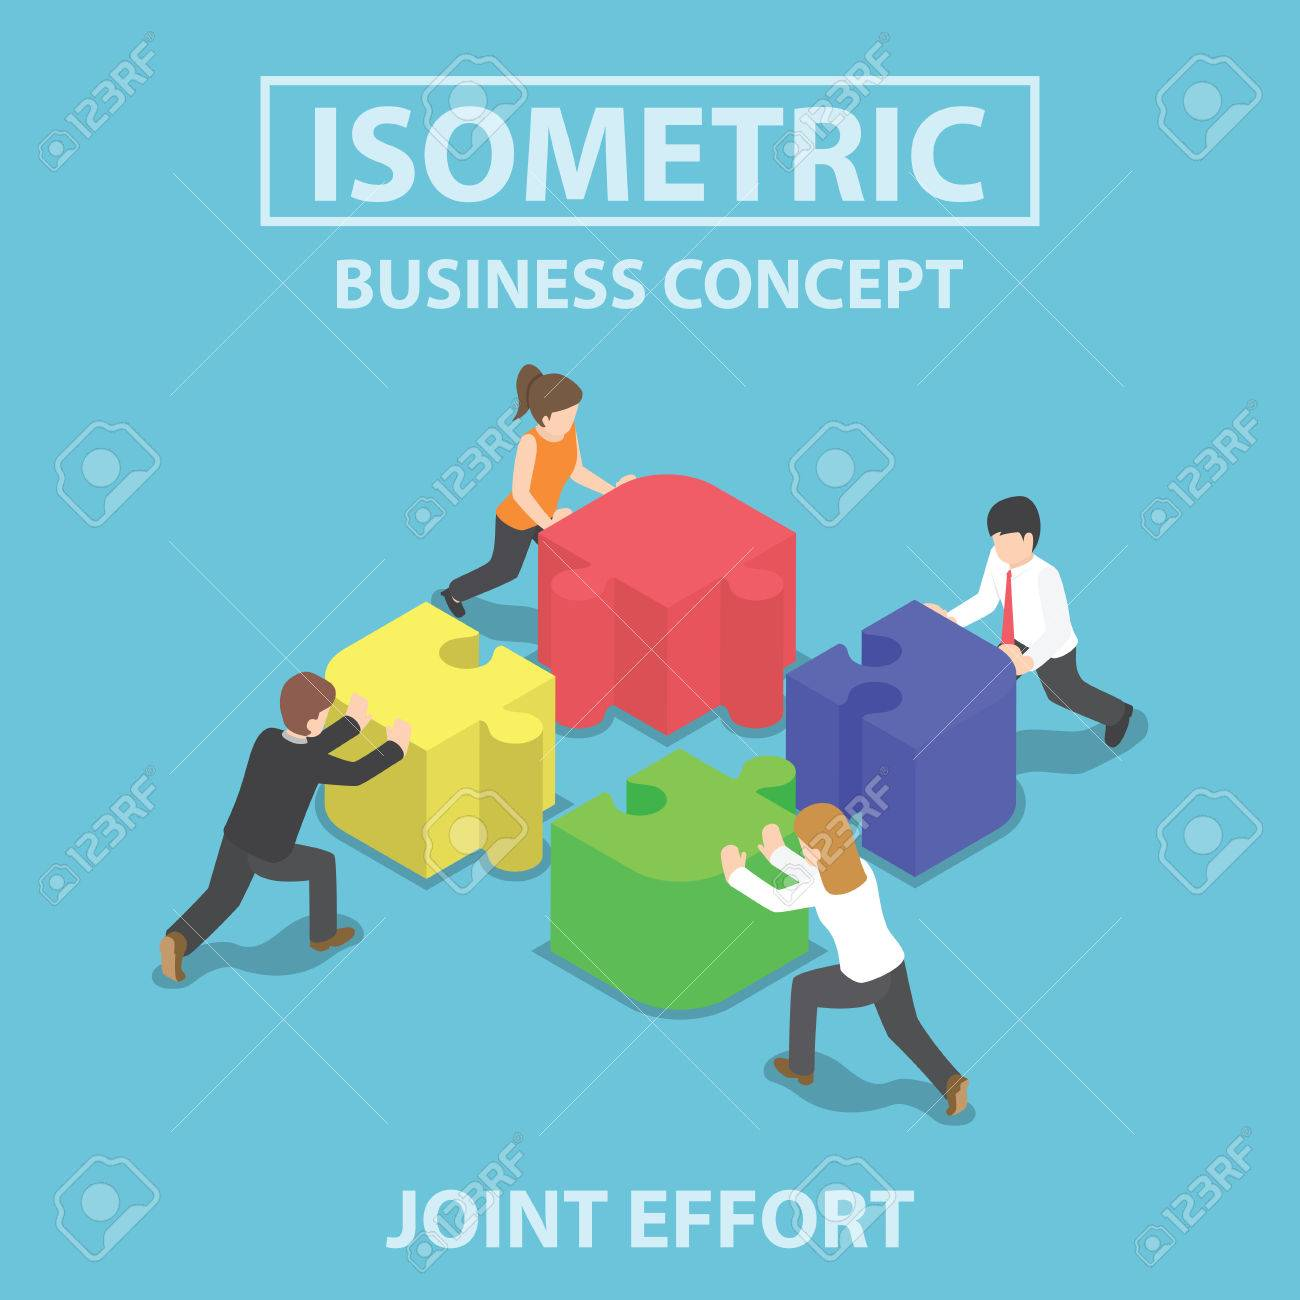 Isometric business people pushing and assembling four jigsaw puzzles, teamwork, collaboration, joint effort concept - 52578005